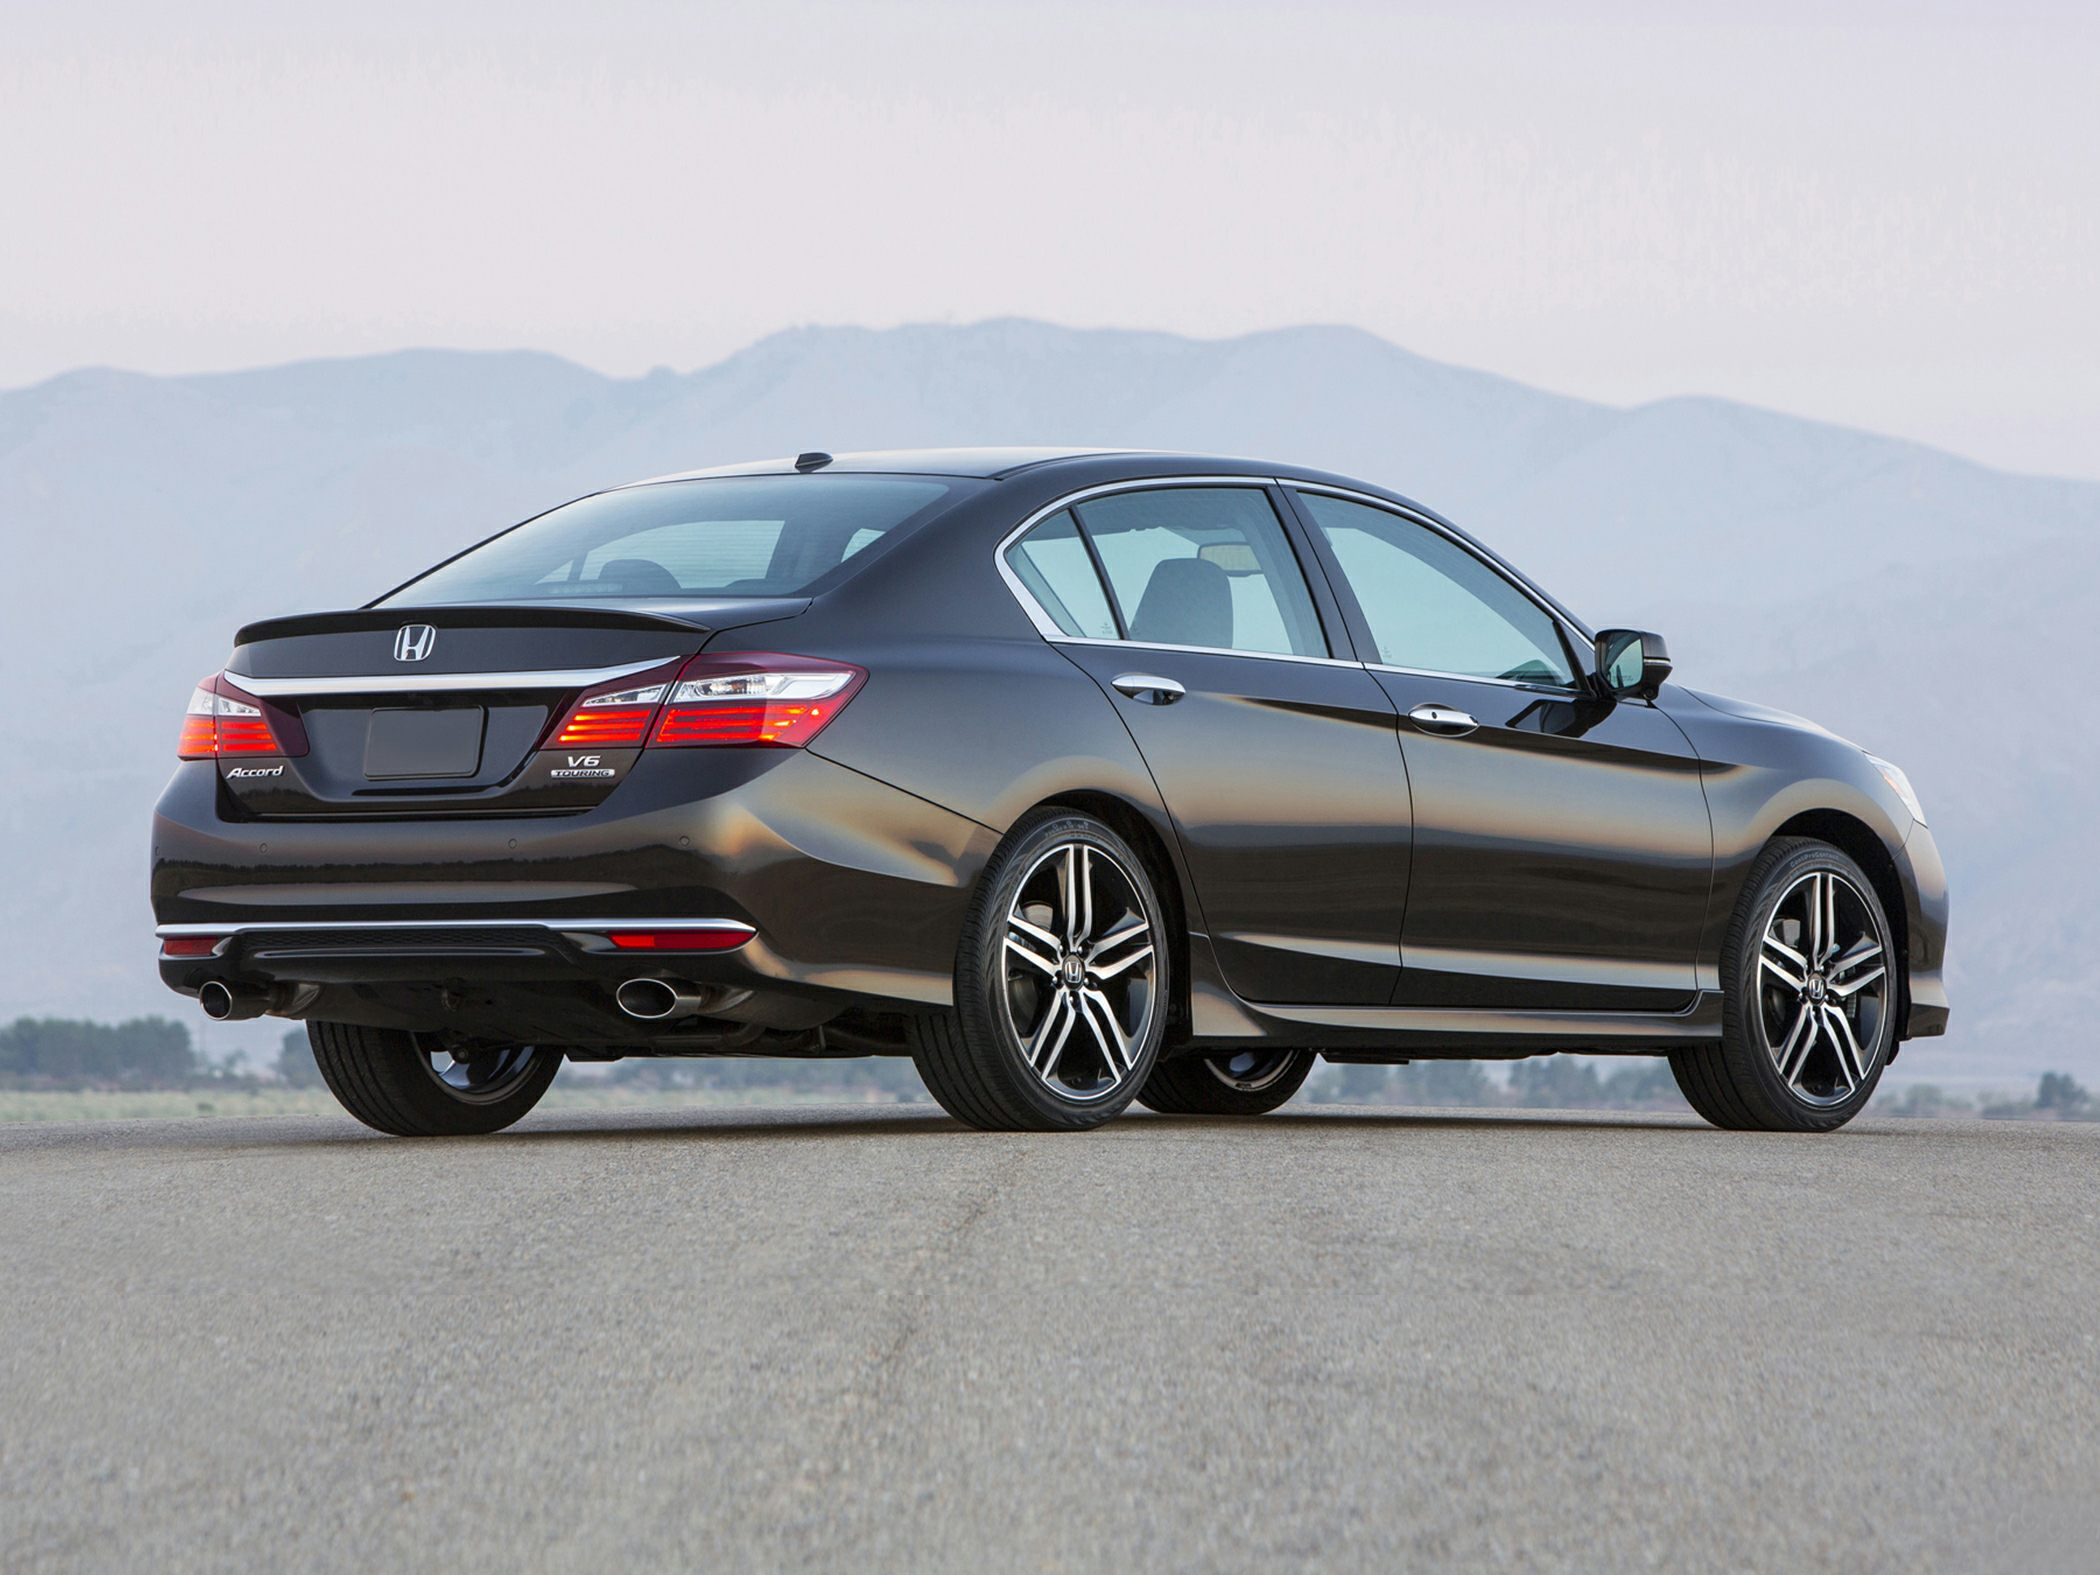 2018 Honda Accord Sedan photo - 1